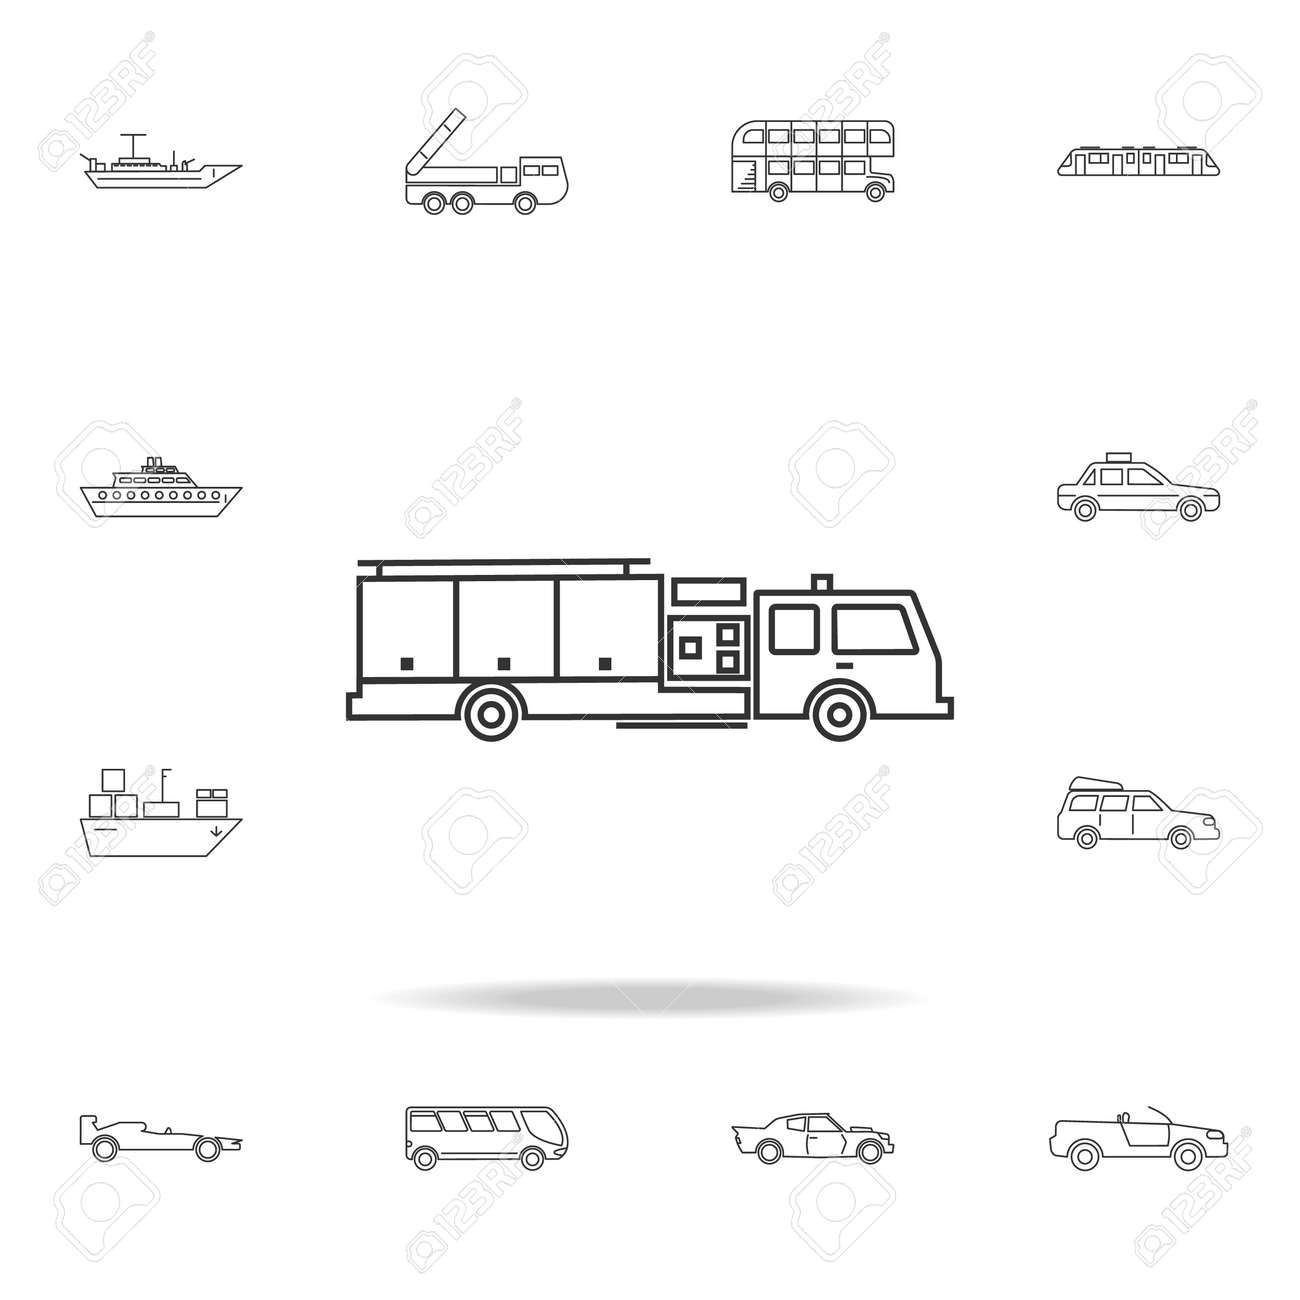 Fire Truck Icon Detailed Set Of Transport Outline Icons Premium Quality Graphic Design